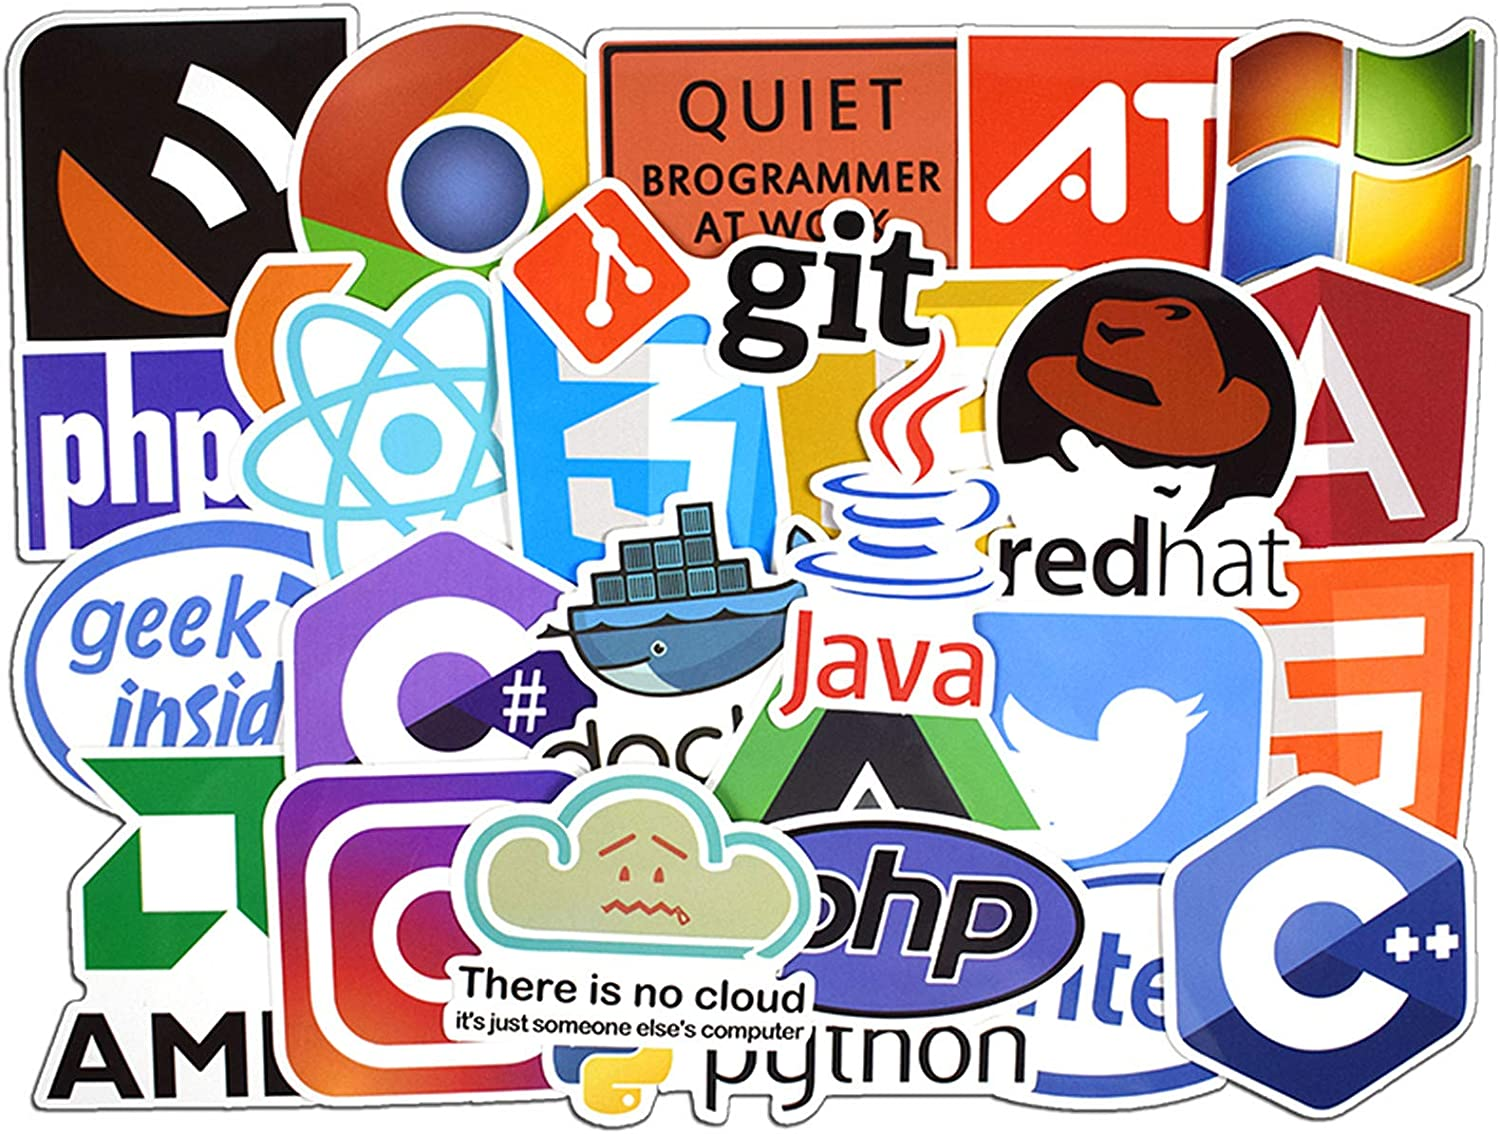 50 Pcs Program Vinyl Waterproof Stickers, for Laptop, Luggage, Car, Skateboard, Motorcycle, Bicycle Decal Graffiti Patches